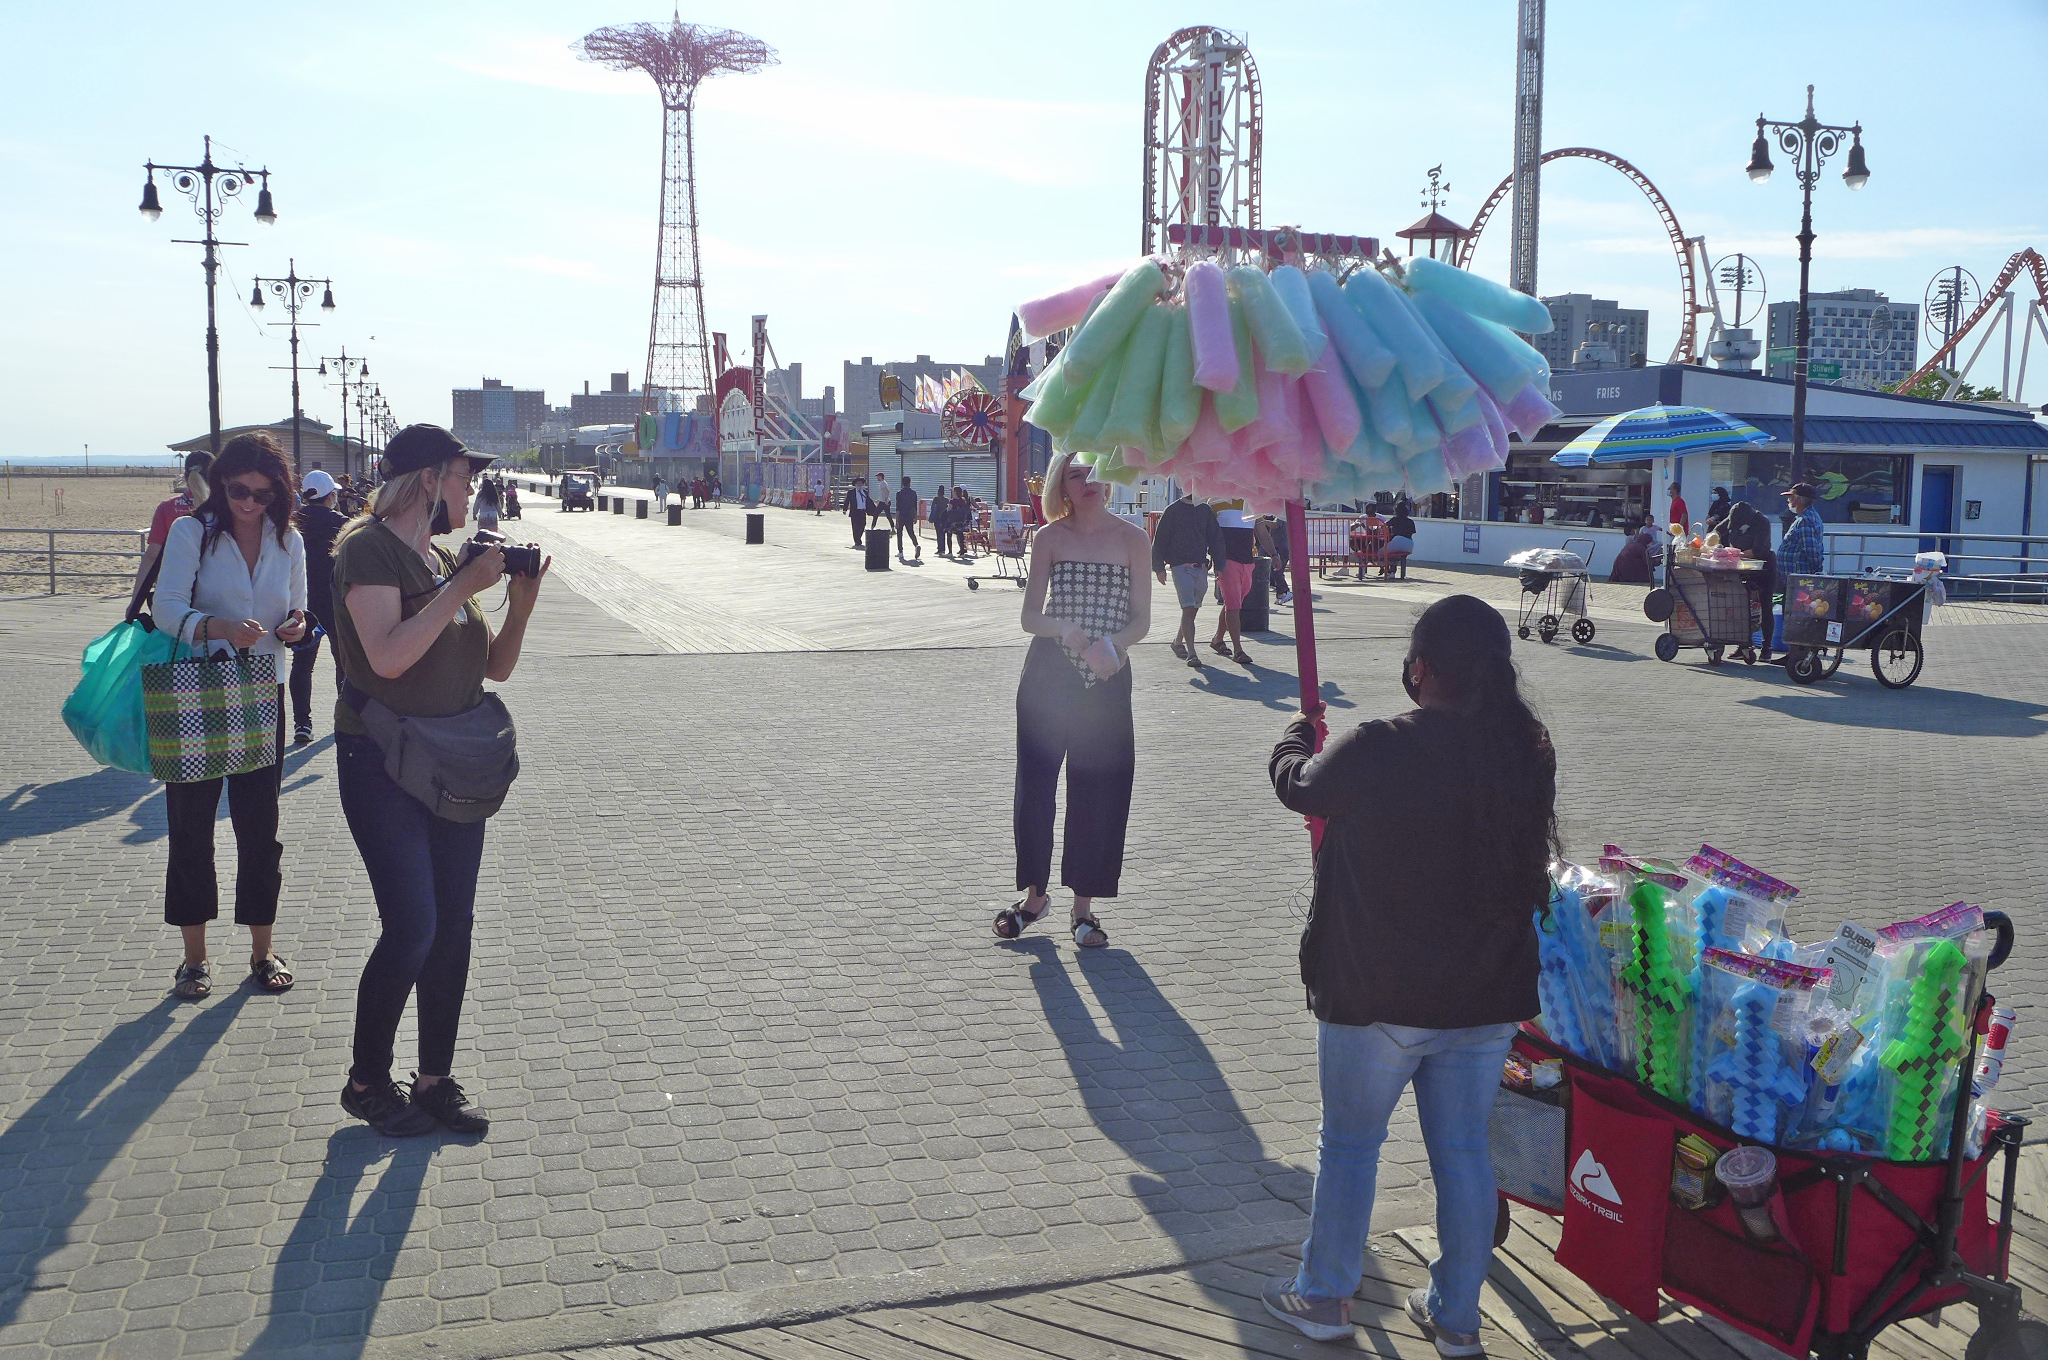 A boardwalk with a verdor holding up a pole of bags of pastel cotton candy.